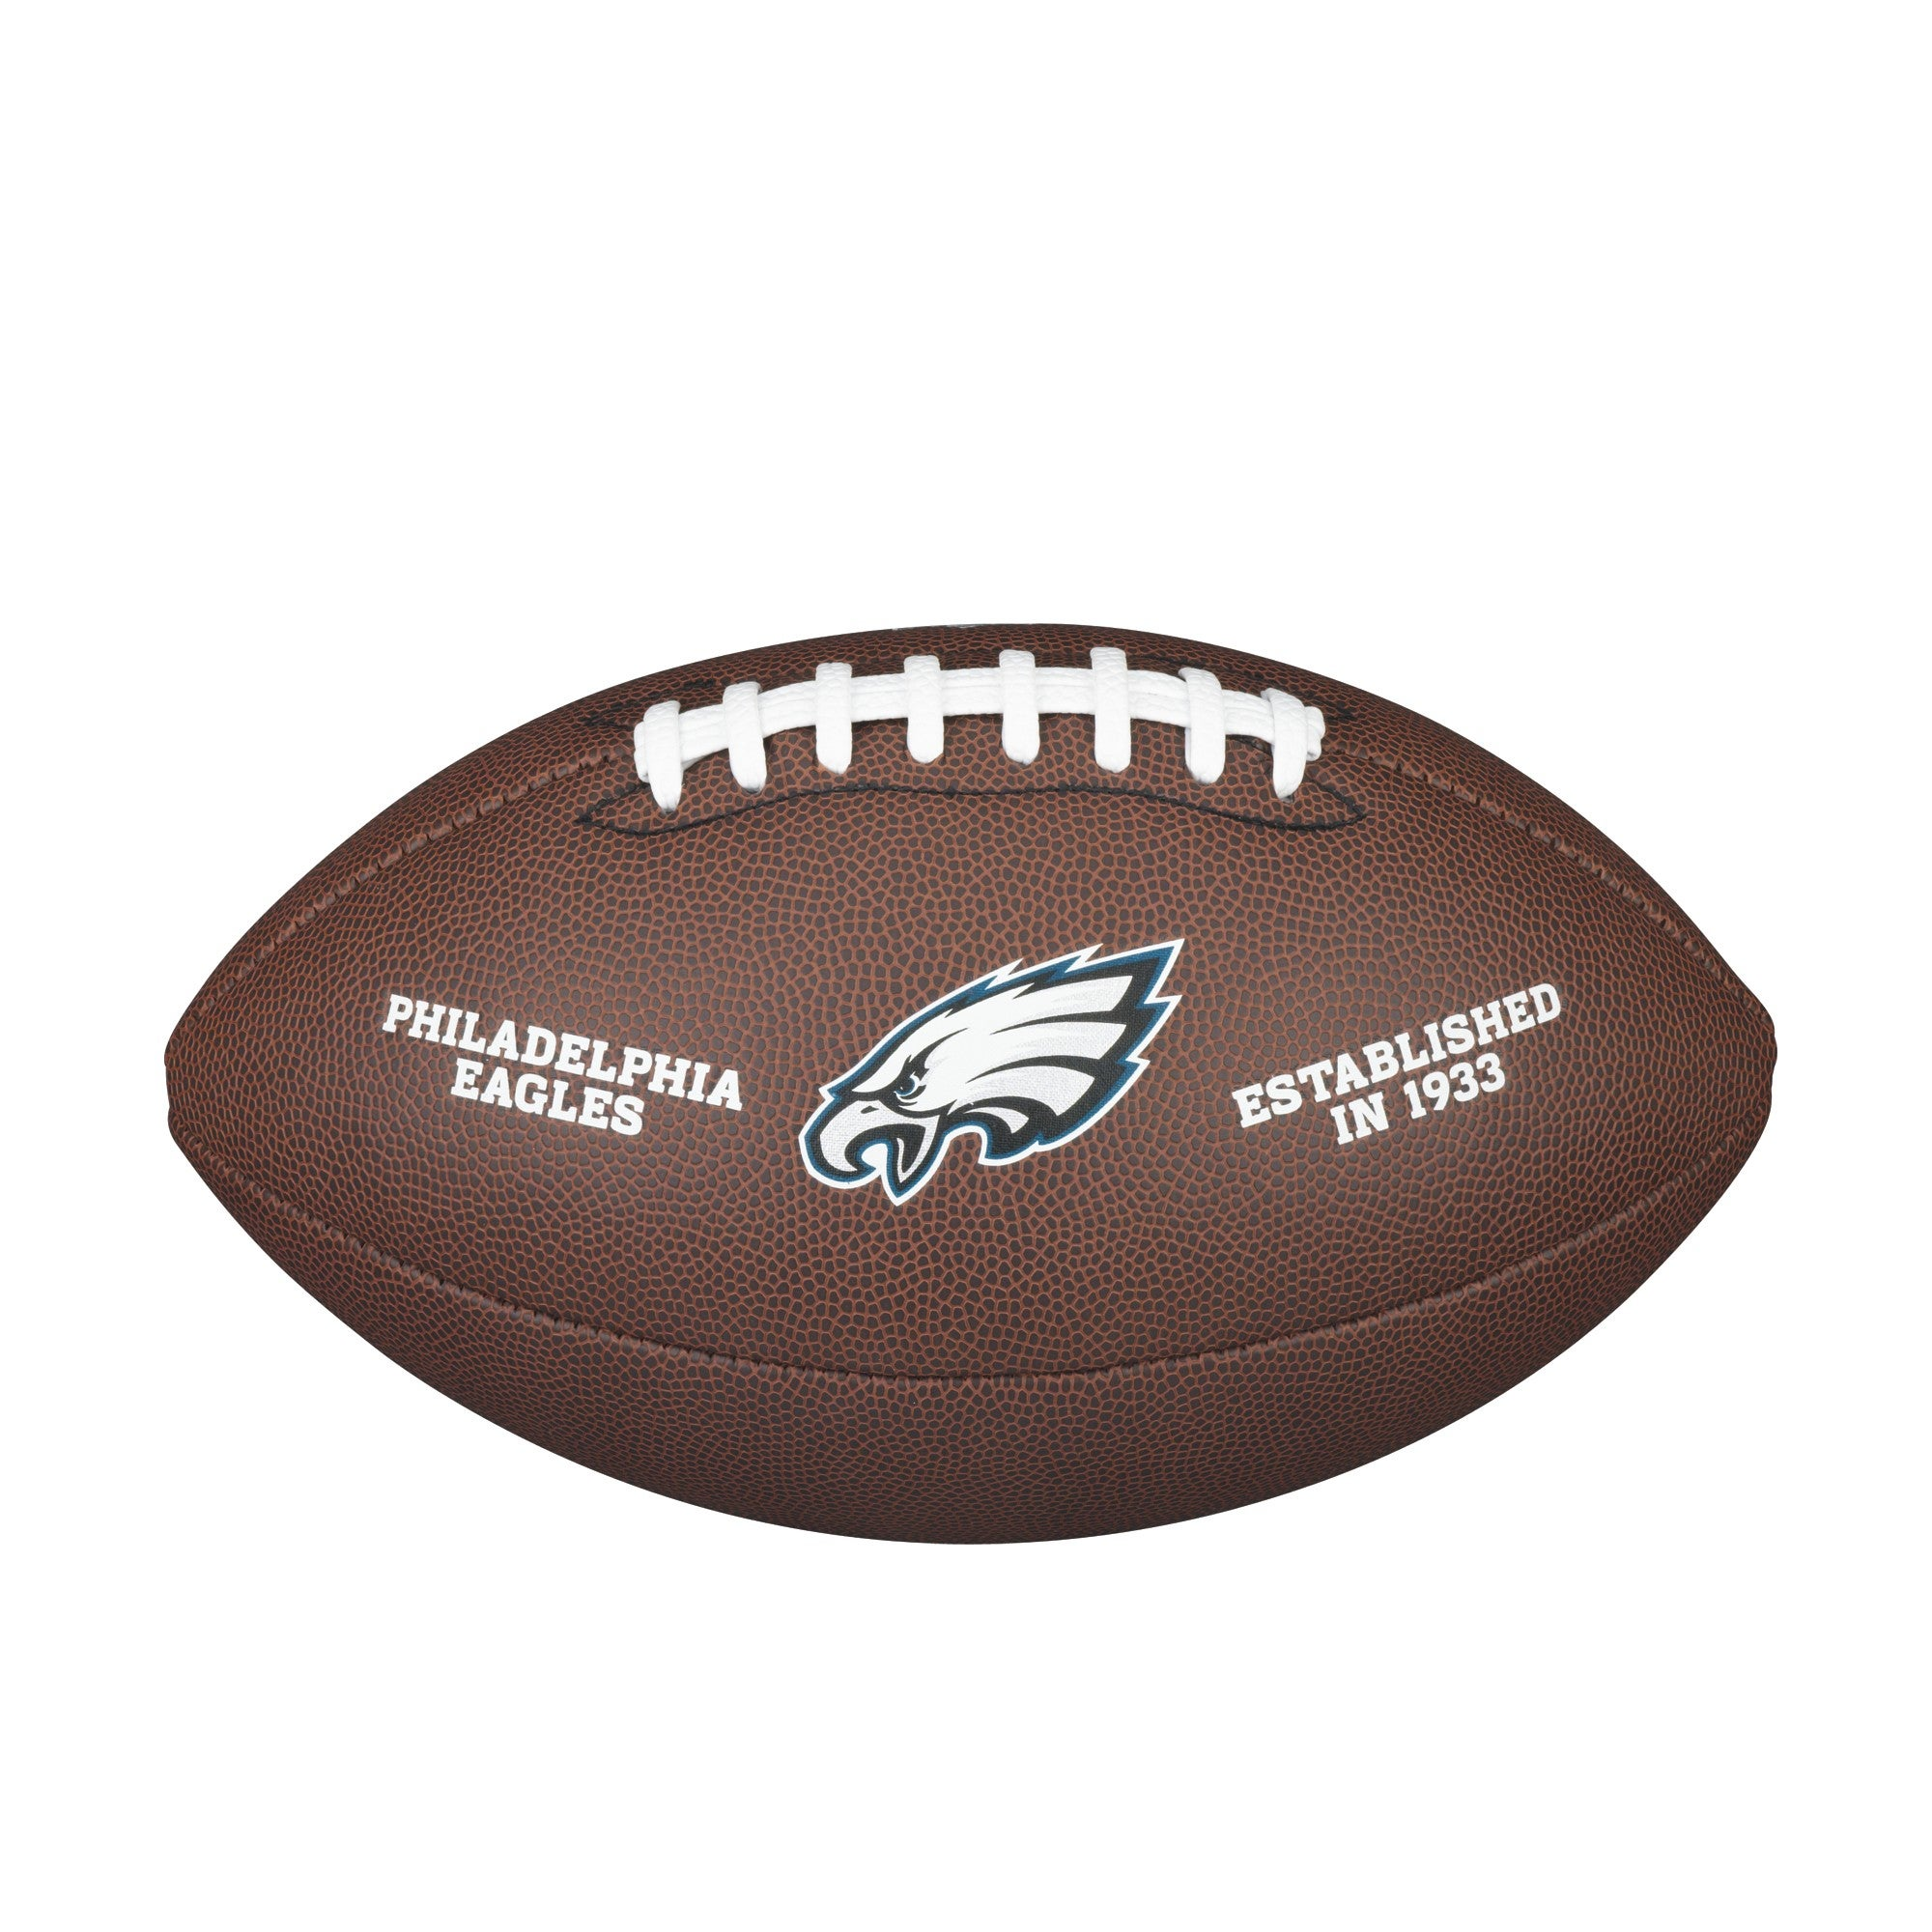 NFL TEAM LOGO COMPOSITE FOOTBALL - OFFICIAL, PHILADELPHIA EAGLES